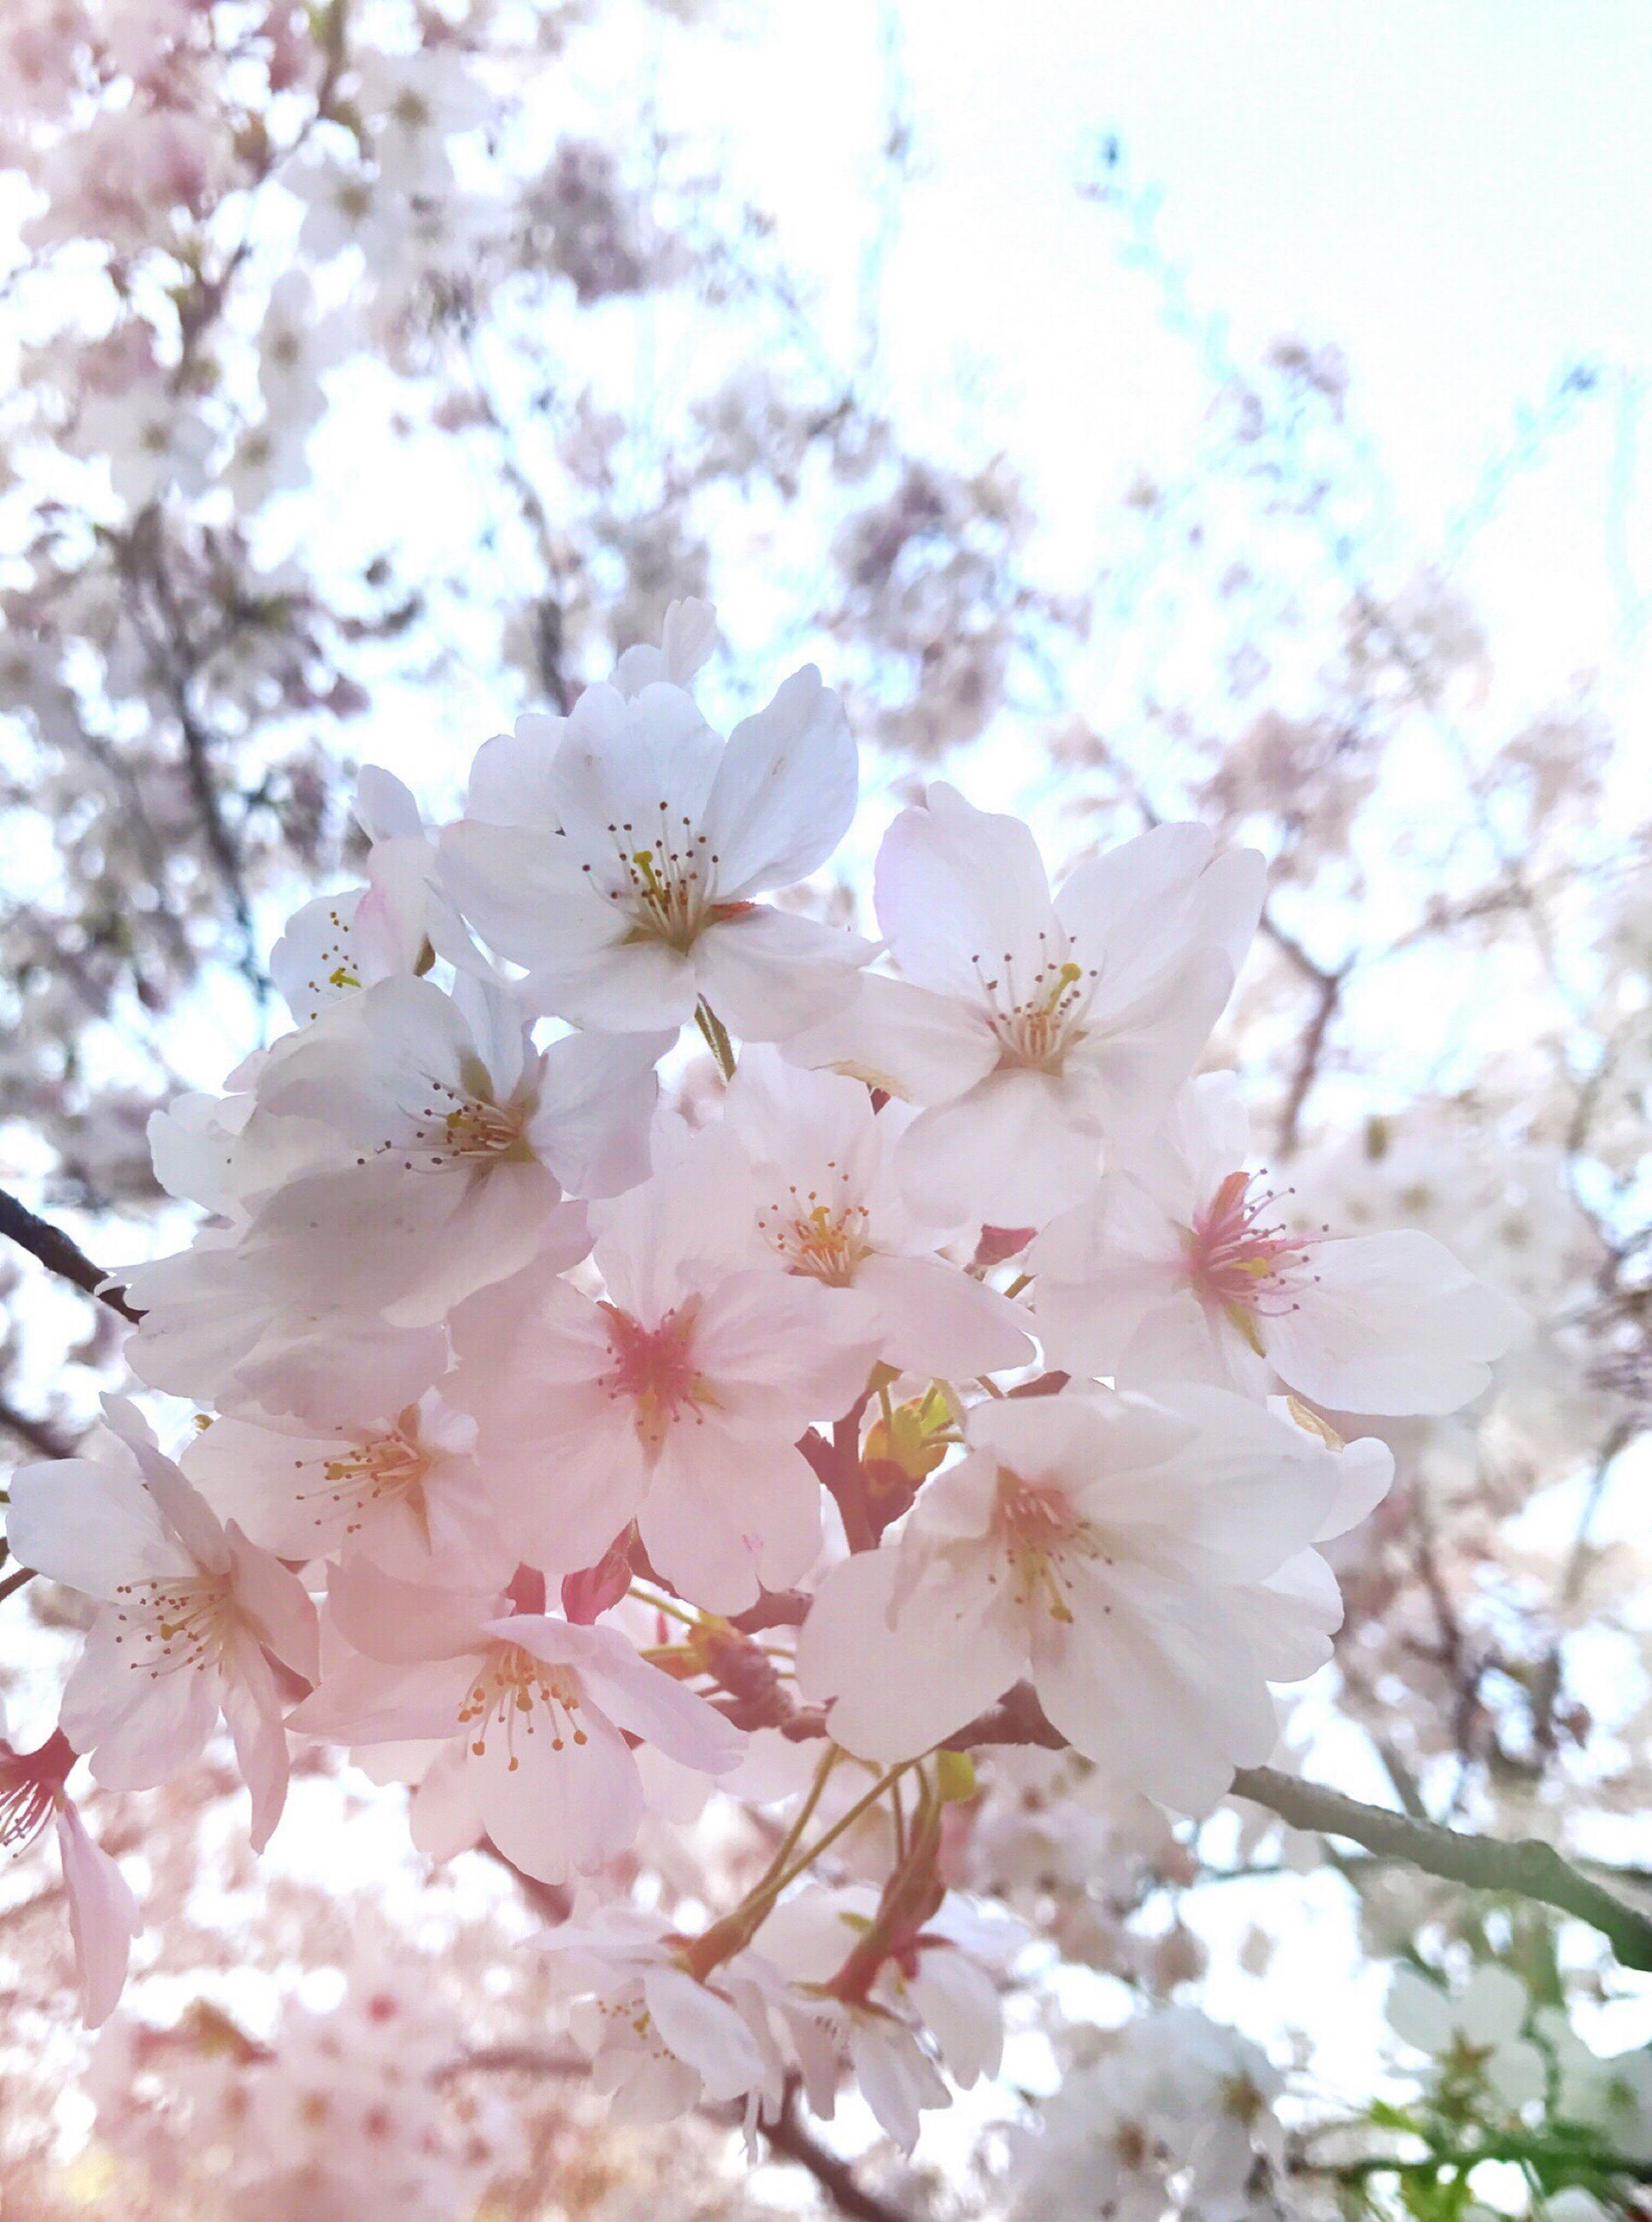 nature, flower, beauty in nature, fragility, growth, springtime, blossom, petal, freshness, tree, no people, pink color, outdoors, cherry blossom, close-up, sky, day, flower head, branch, almond tree, cherry tree, plum blossom